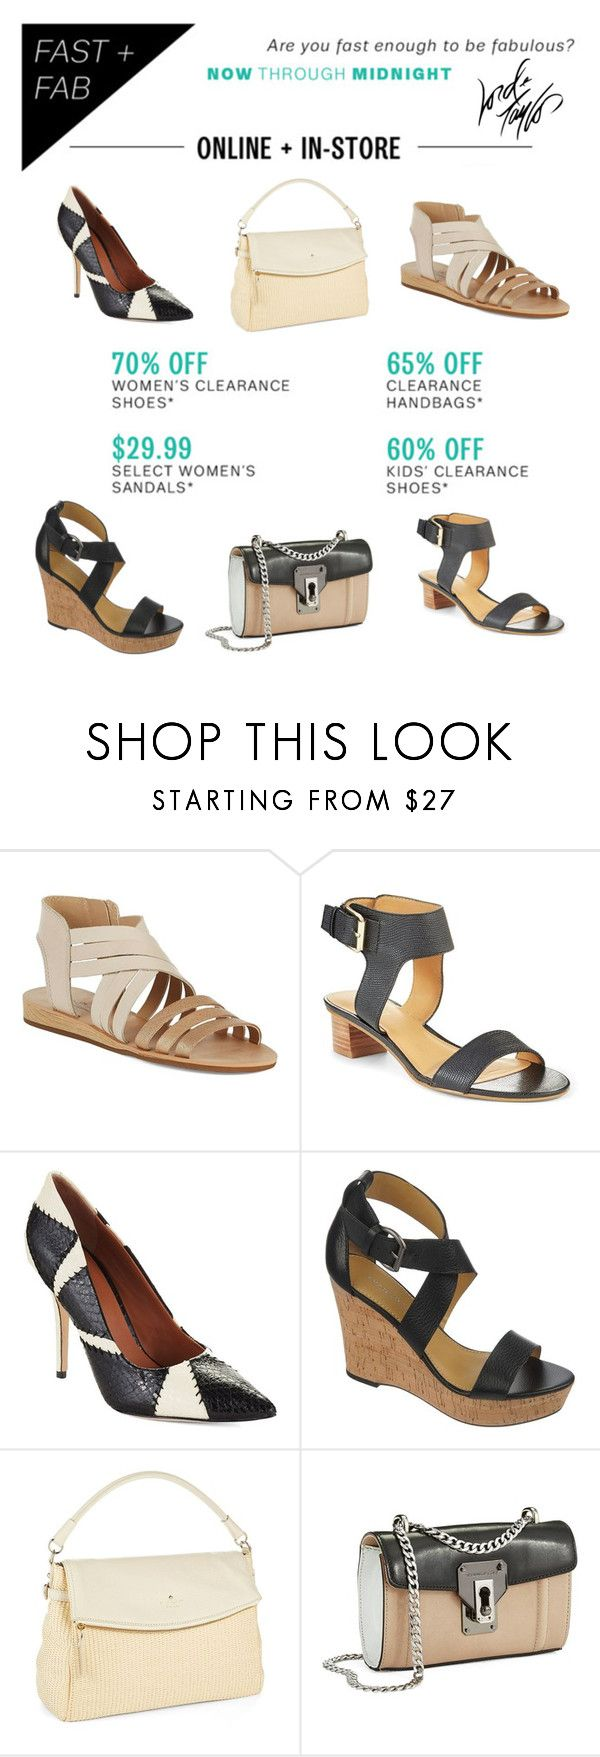 """7/18 Only: Shoes & Handbags SALE"" by lordandtaylor ❤ liked on Polyvore featuring мода, Lord & Taylor, Lucky Brand, Nine West, Rachel Roy, Franco Sarto, Kate Spade и Kenneth Cole"